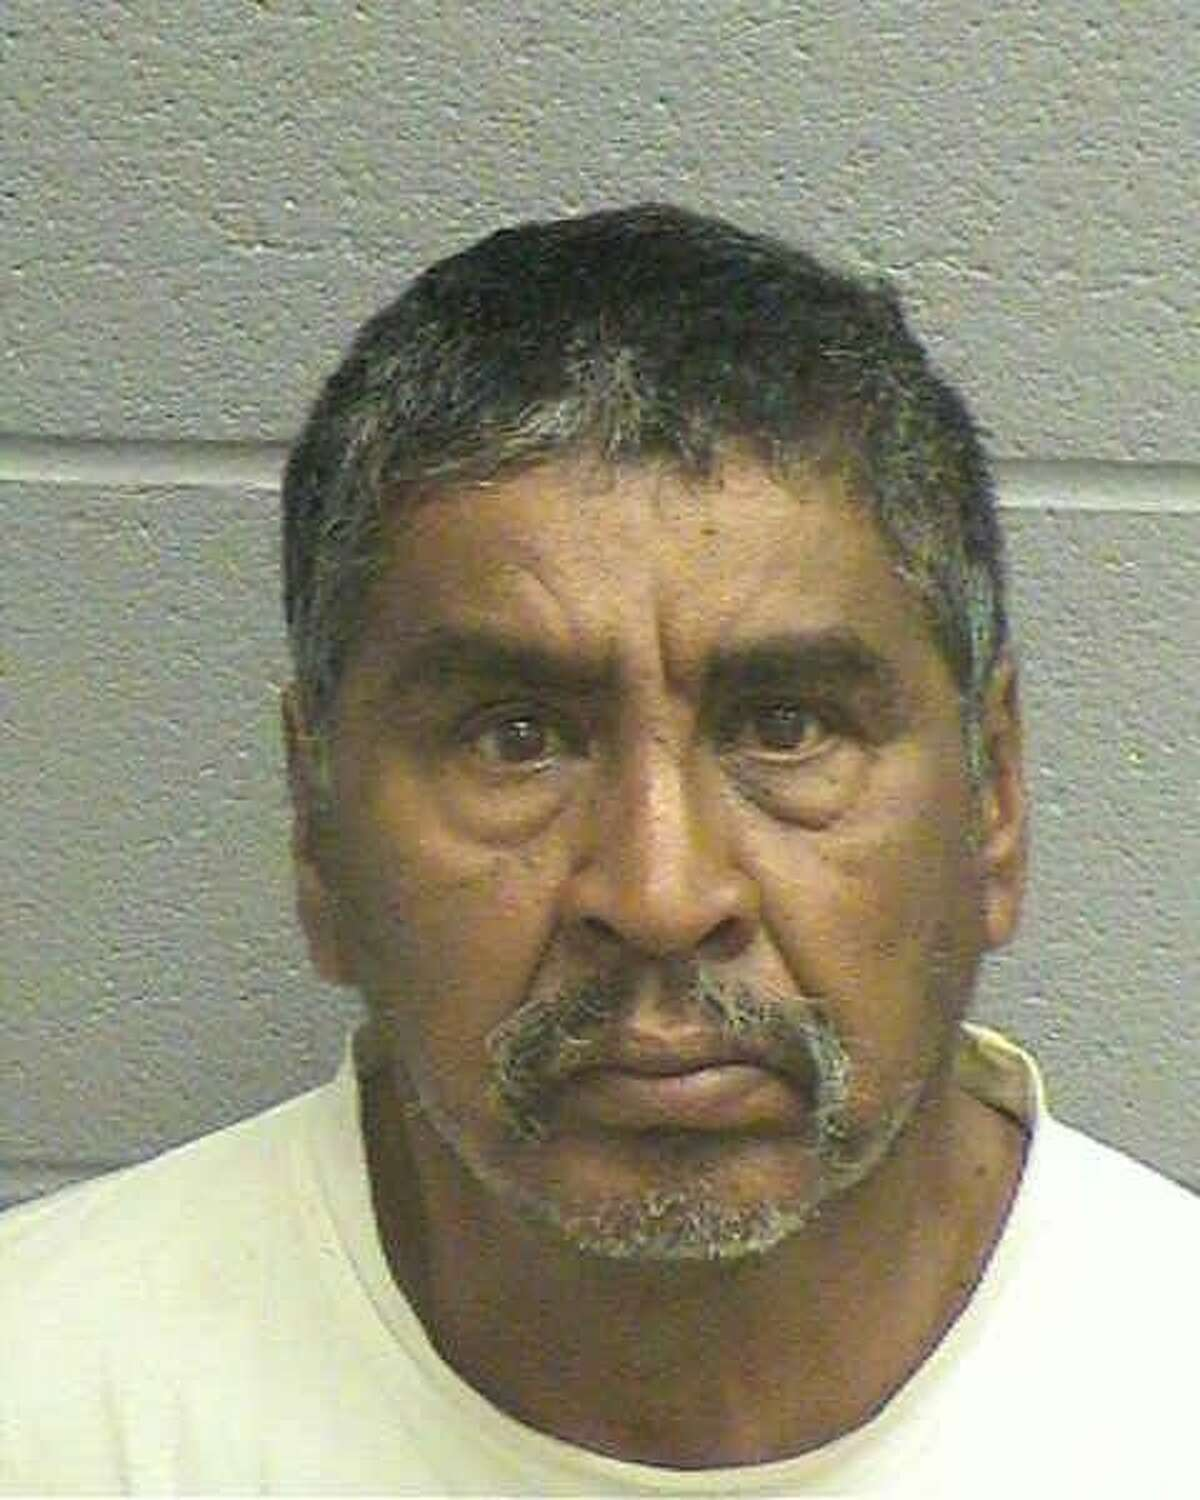 """Lorenzo Meraz Davila, 57, of El Paso, was charged Aug. 26 with a third-degree felony charge of violation of parole and a second-degree felony charge of sexual assault.Davila allegedly sexually assaulted a woman to """"get revenge for what her husband did to him"""" and that he was going to """"make her his."""" He sexually assaulted her in different ways and slapper her multiple times, according to Reporter-Telegram records.If convicted, Davila faces up to 10 years in prison for the third-degree felony and up to 20 years for the second-degree felony."""